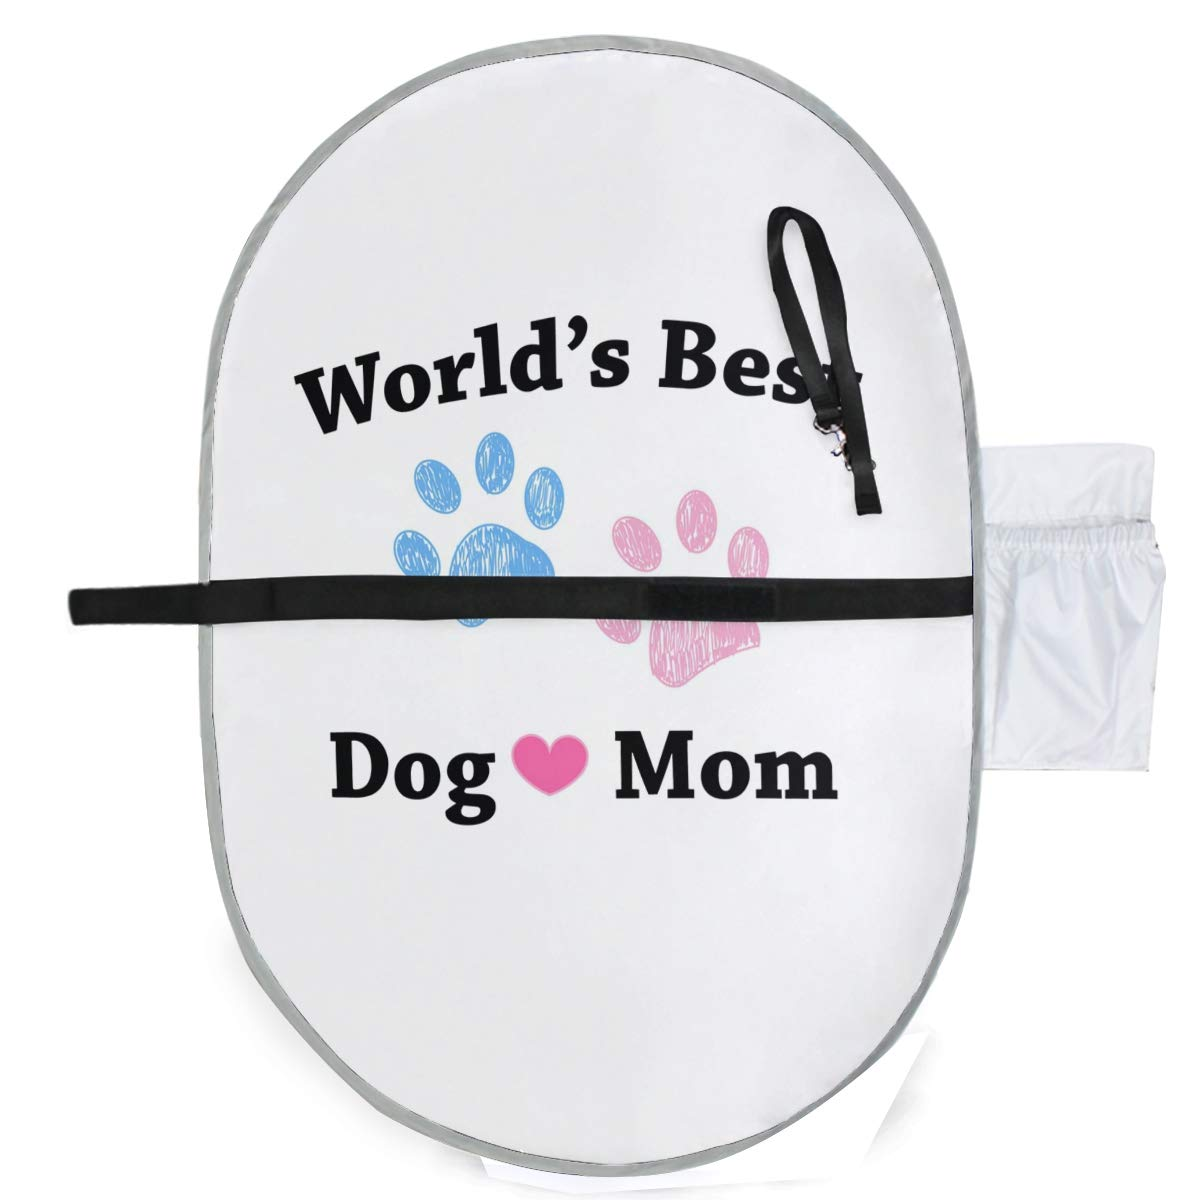 ZZXXB World's Best Dog Mom Baby Portable Changing Pad Waterproof Diaper Change Mat Large for Infant Quick Change